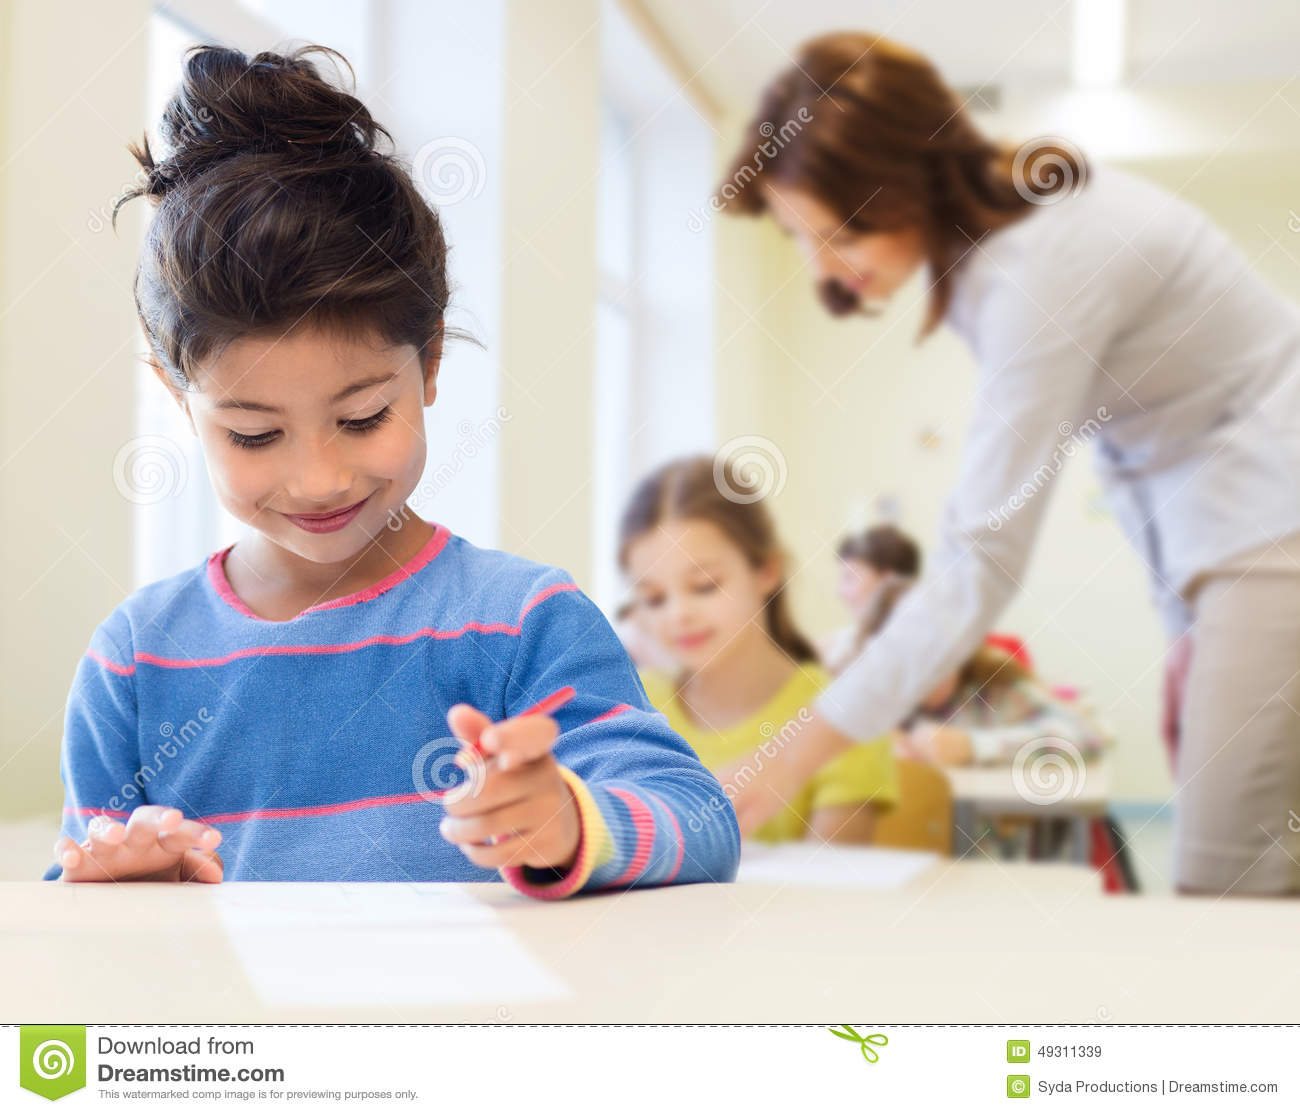 education and happiness essay Happiness 1 megan stinson kim madsen english 101 essay 2 being happy at work when is a person truly happy to be in a work place is it because of prestige or is it something they enjoy doing and they with themselves every day.